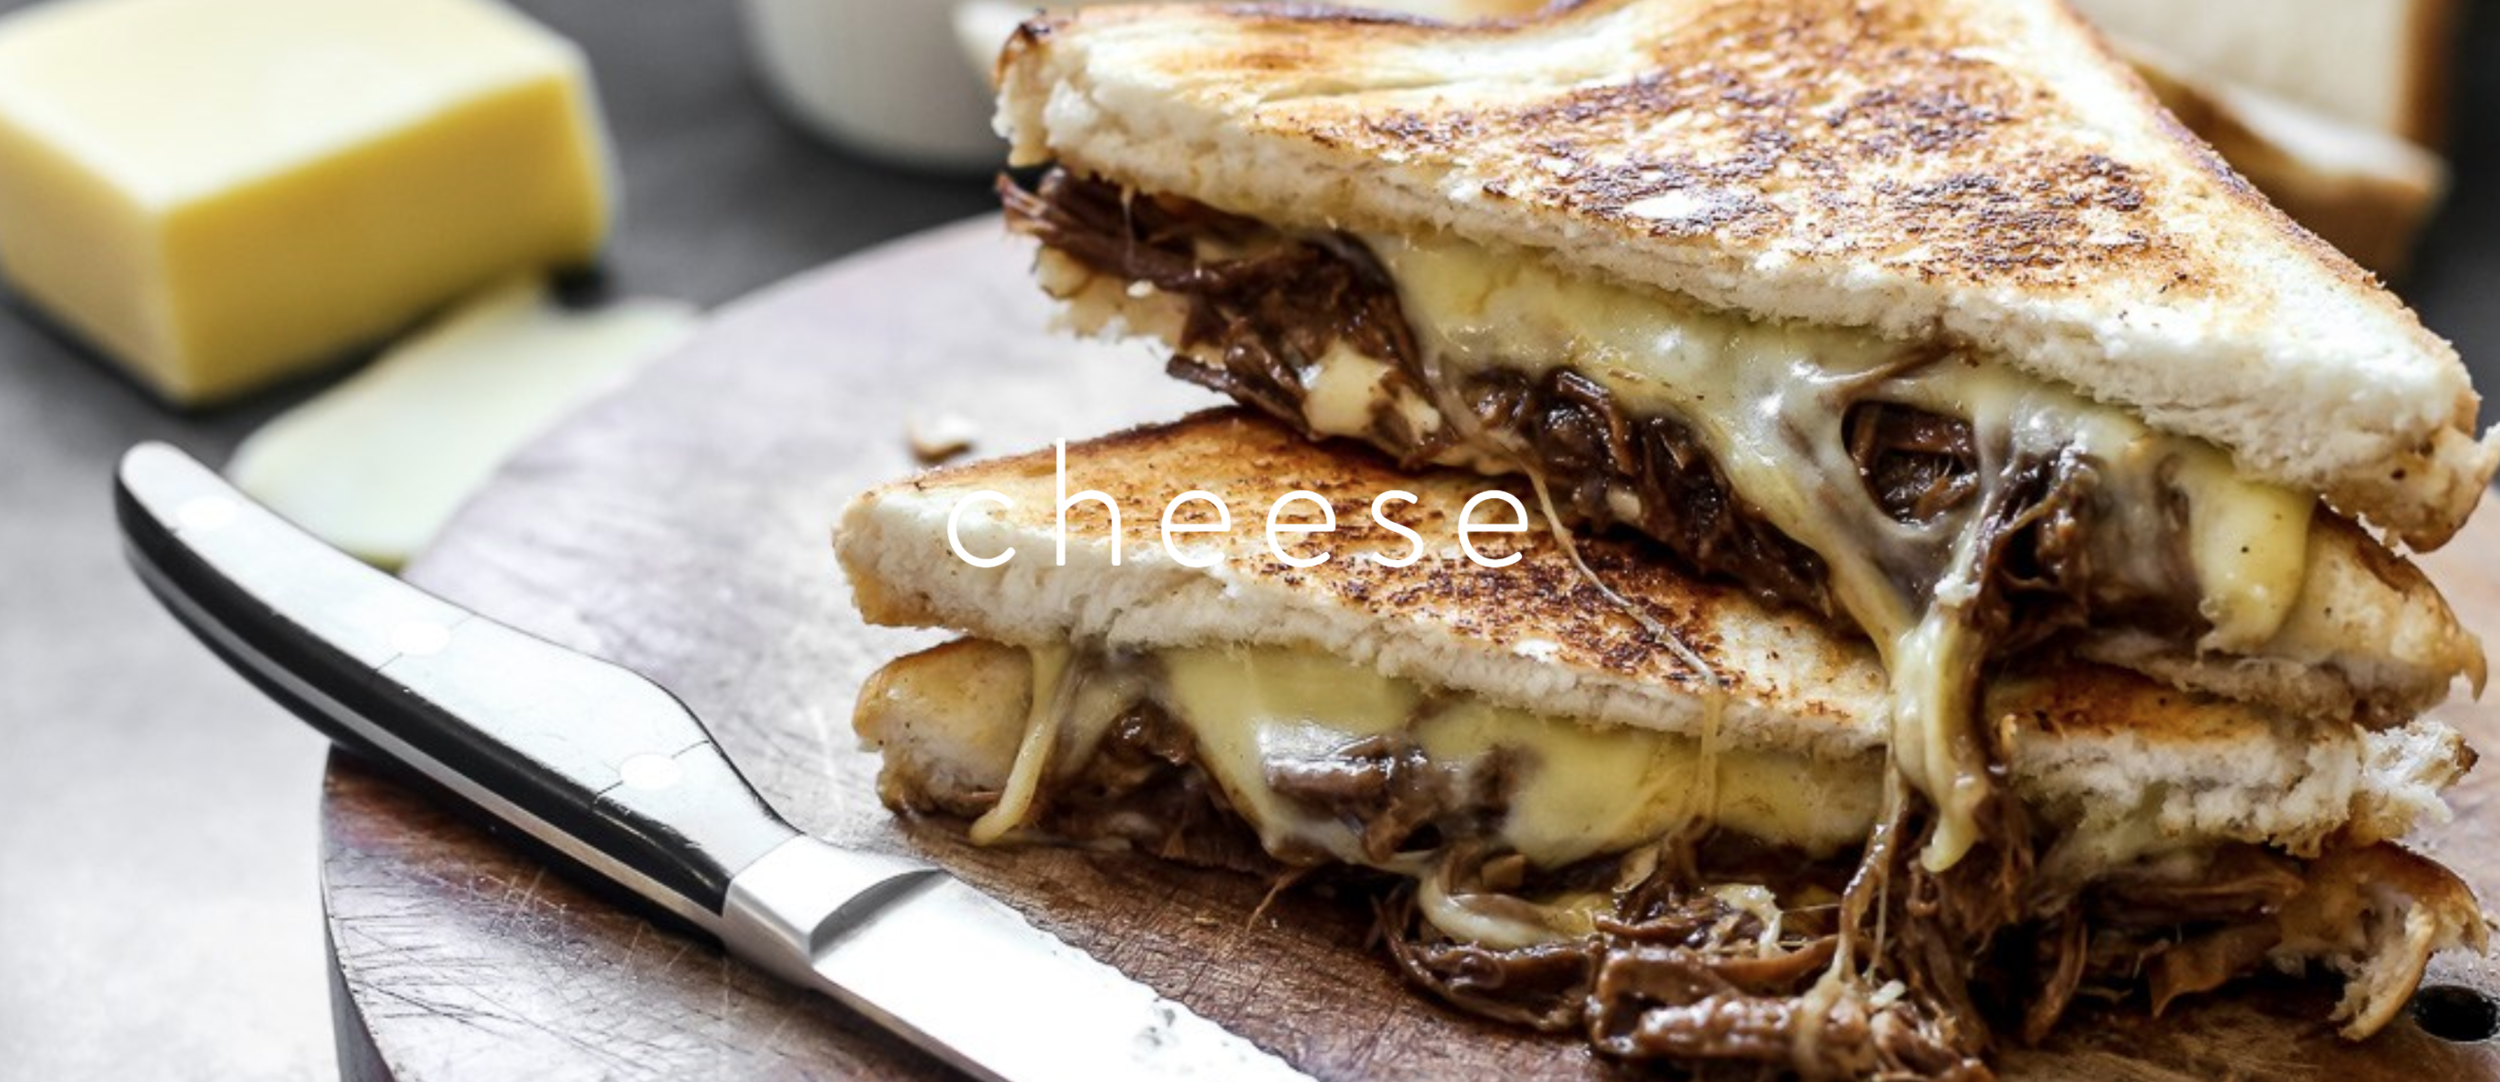 Grilled Cheese Grand Prix